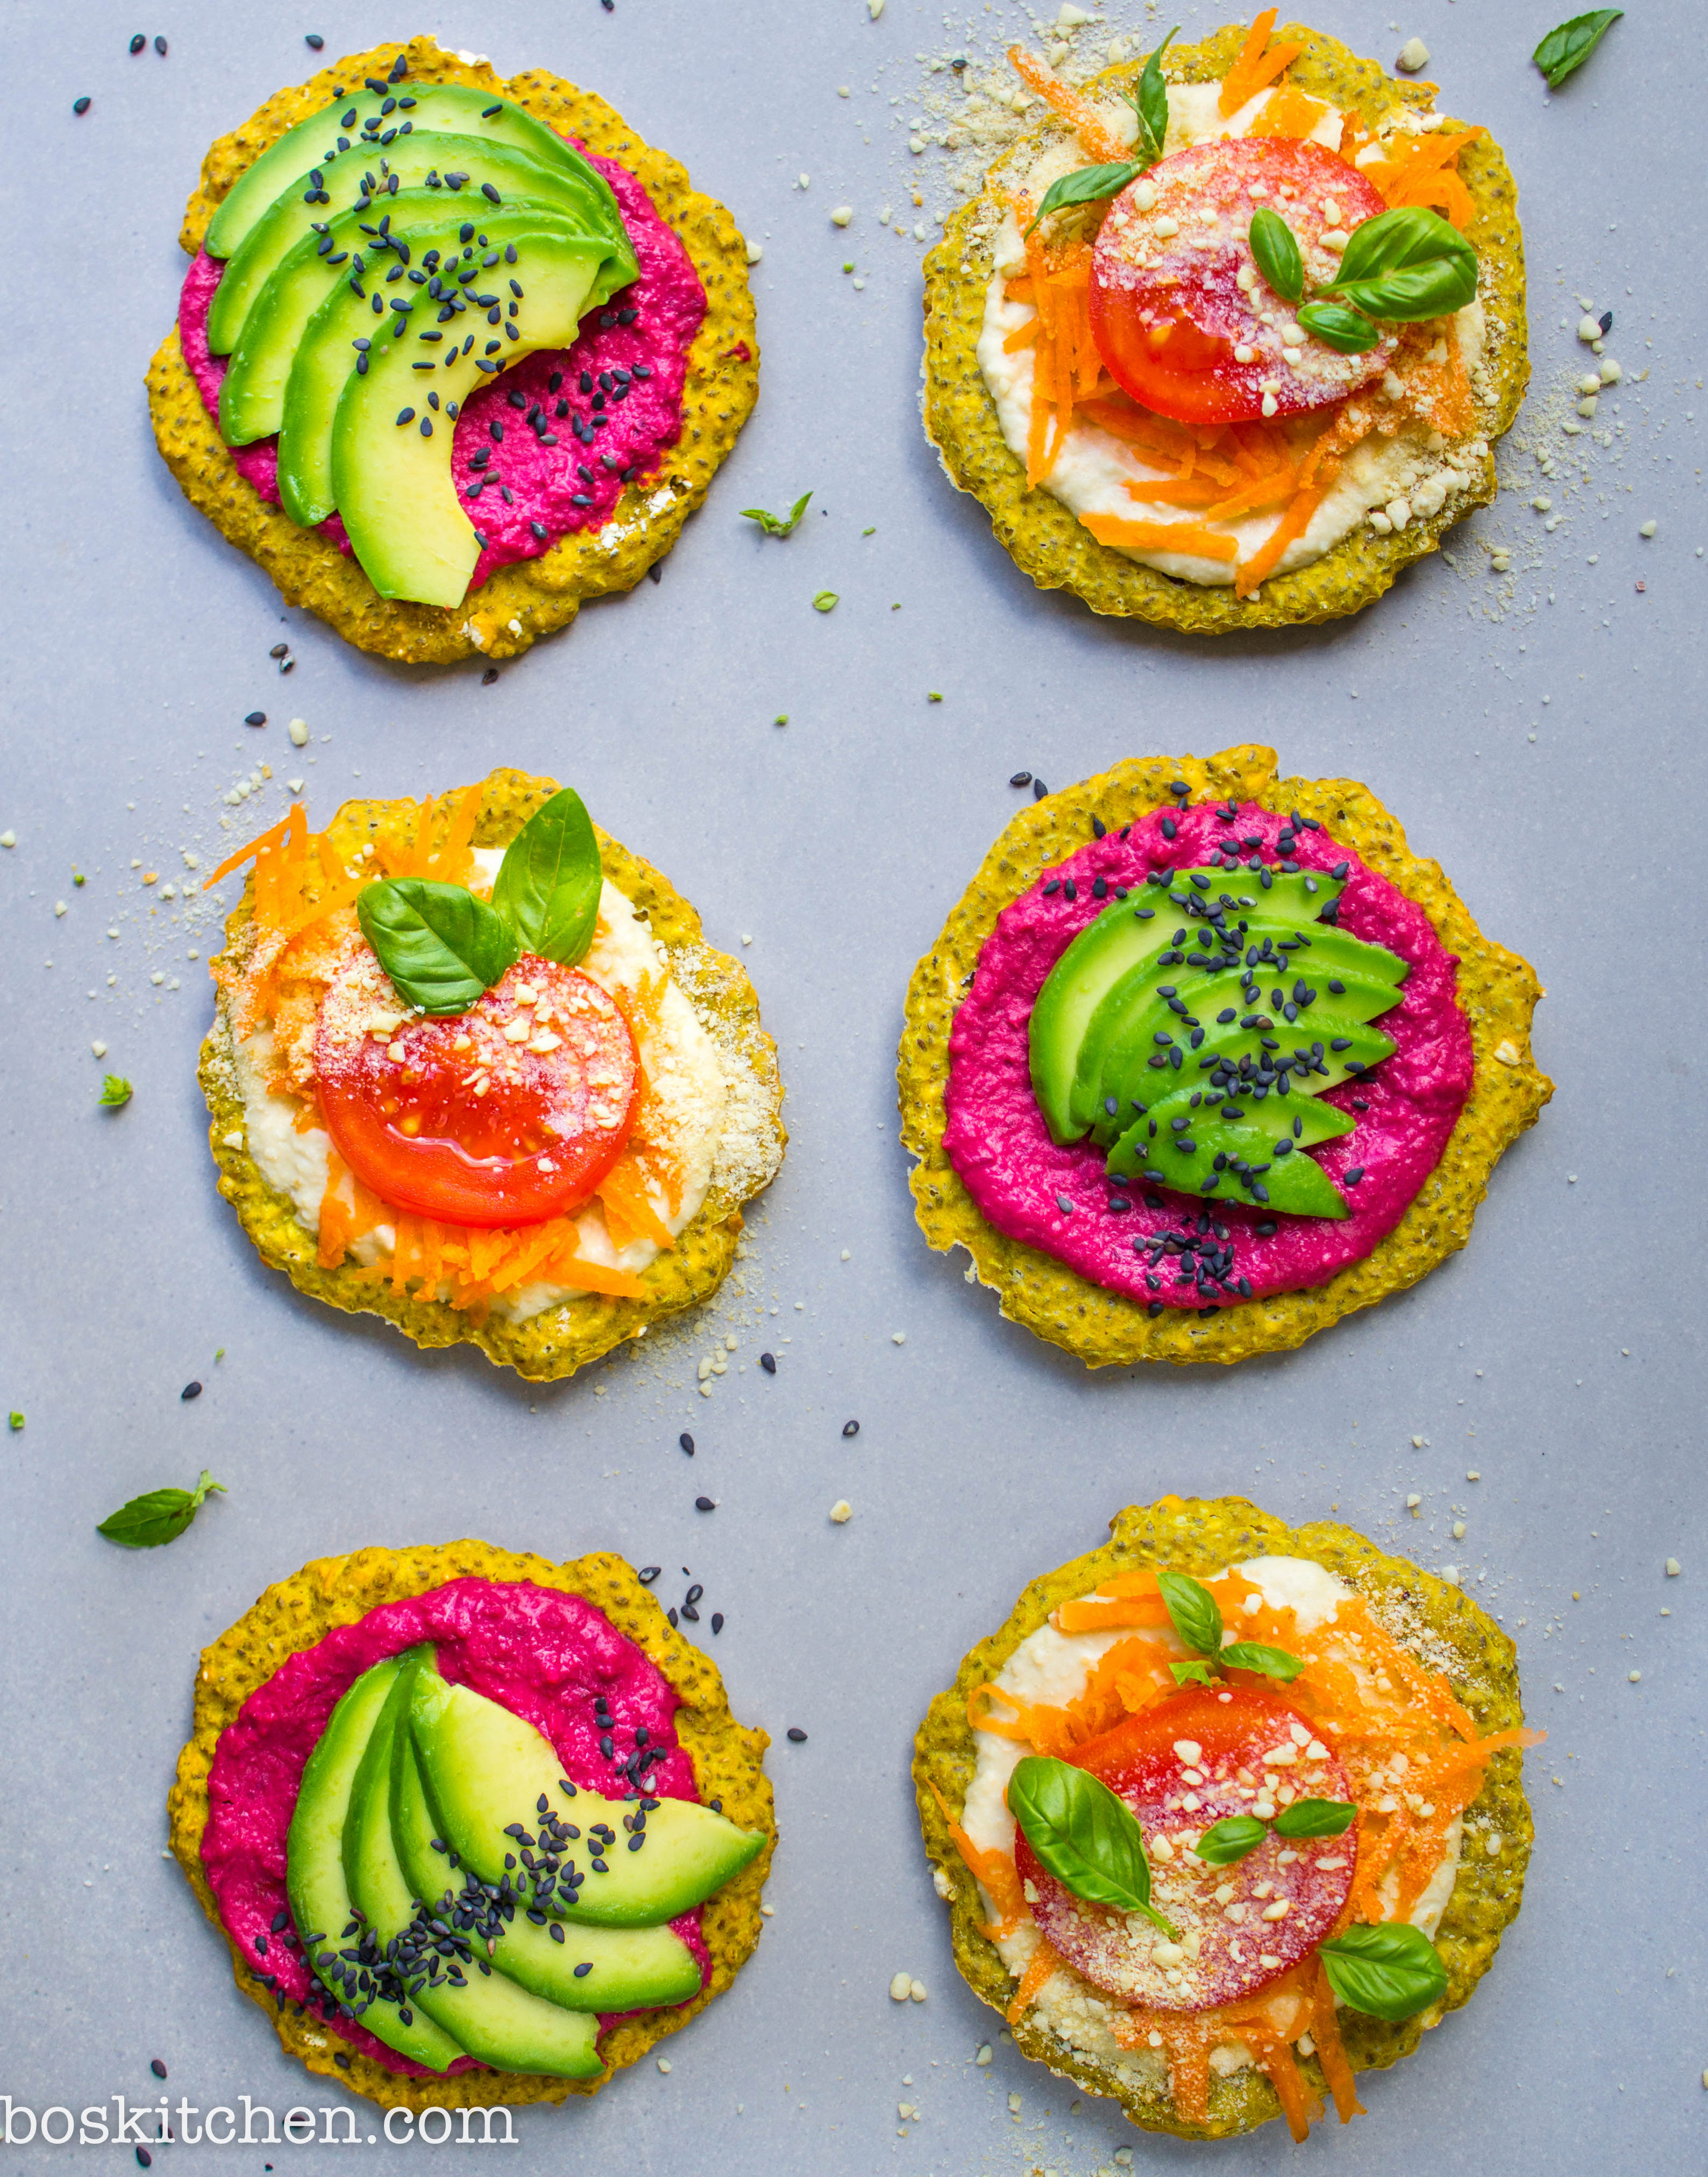 sunshine pizzas with chia and maca and turmeric topped with humous and avocado and grated carrot